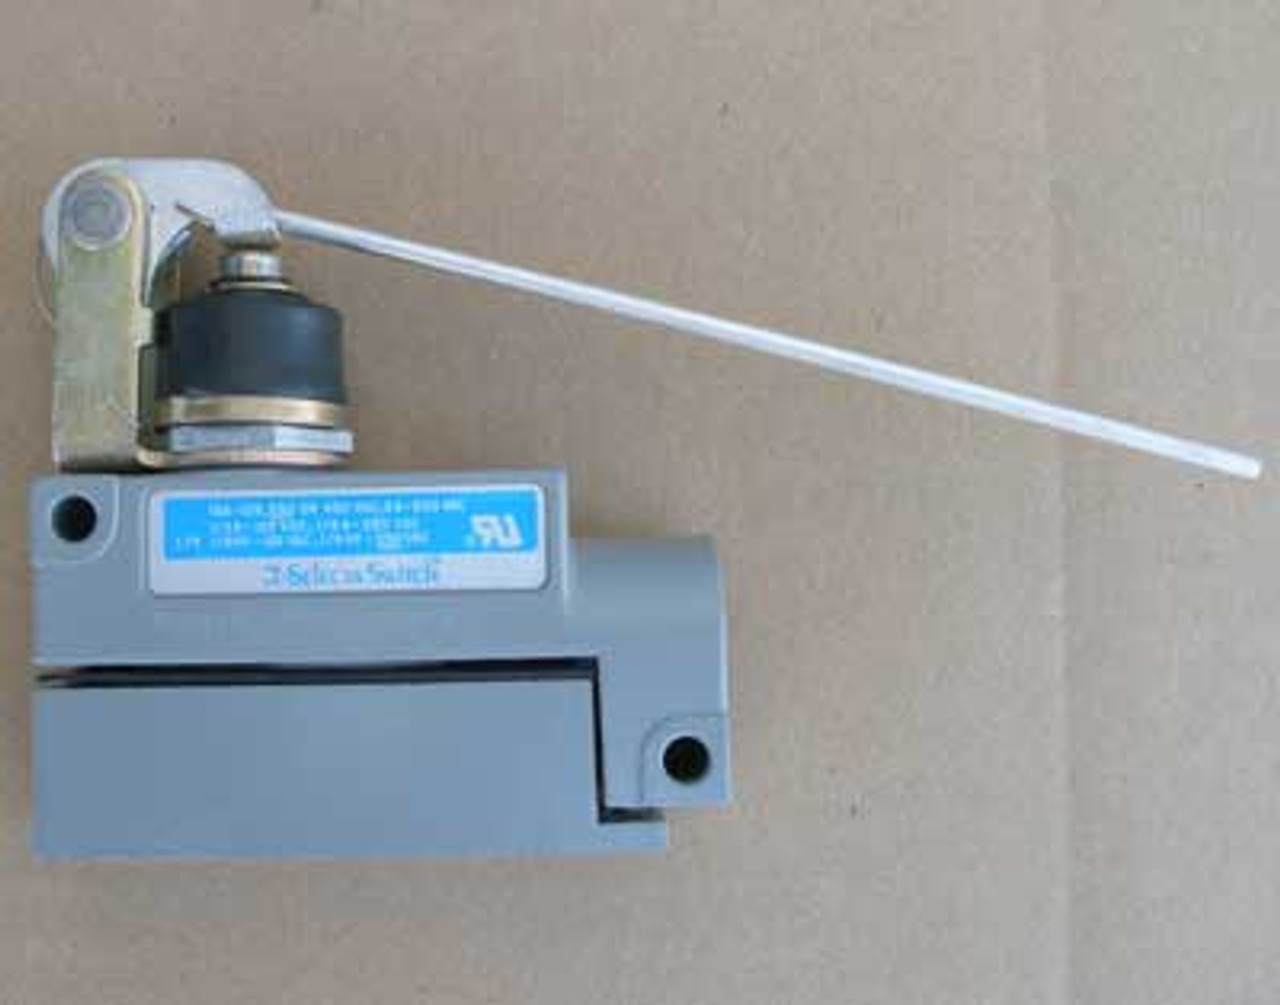 Selecta Switch BZG1-2RN62 Limit Switch 15 Amp -125/250/480VAC - New